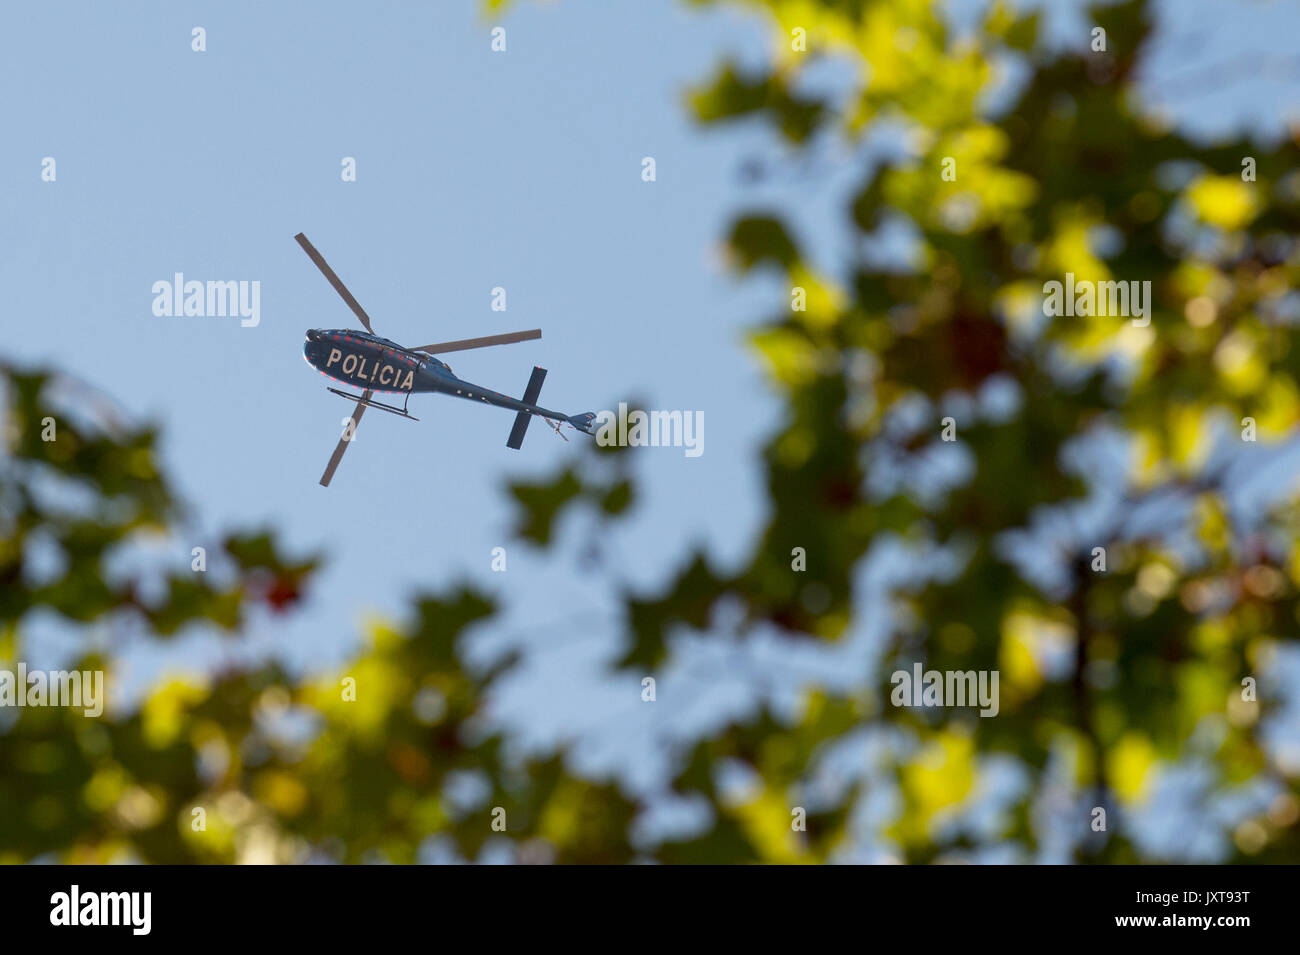 Spanish Police Helicopter Stock Photos & Spanish Police